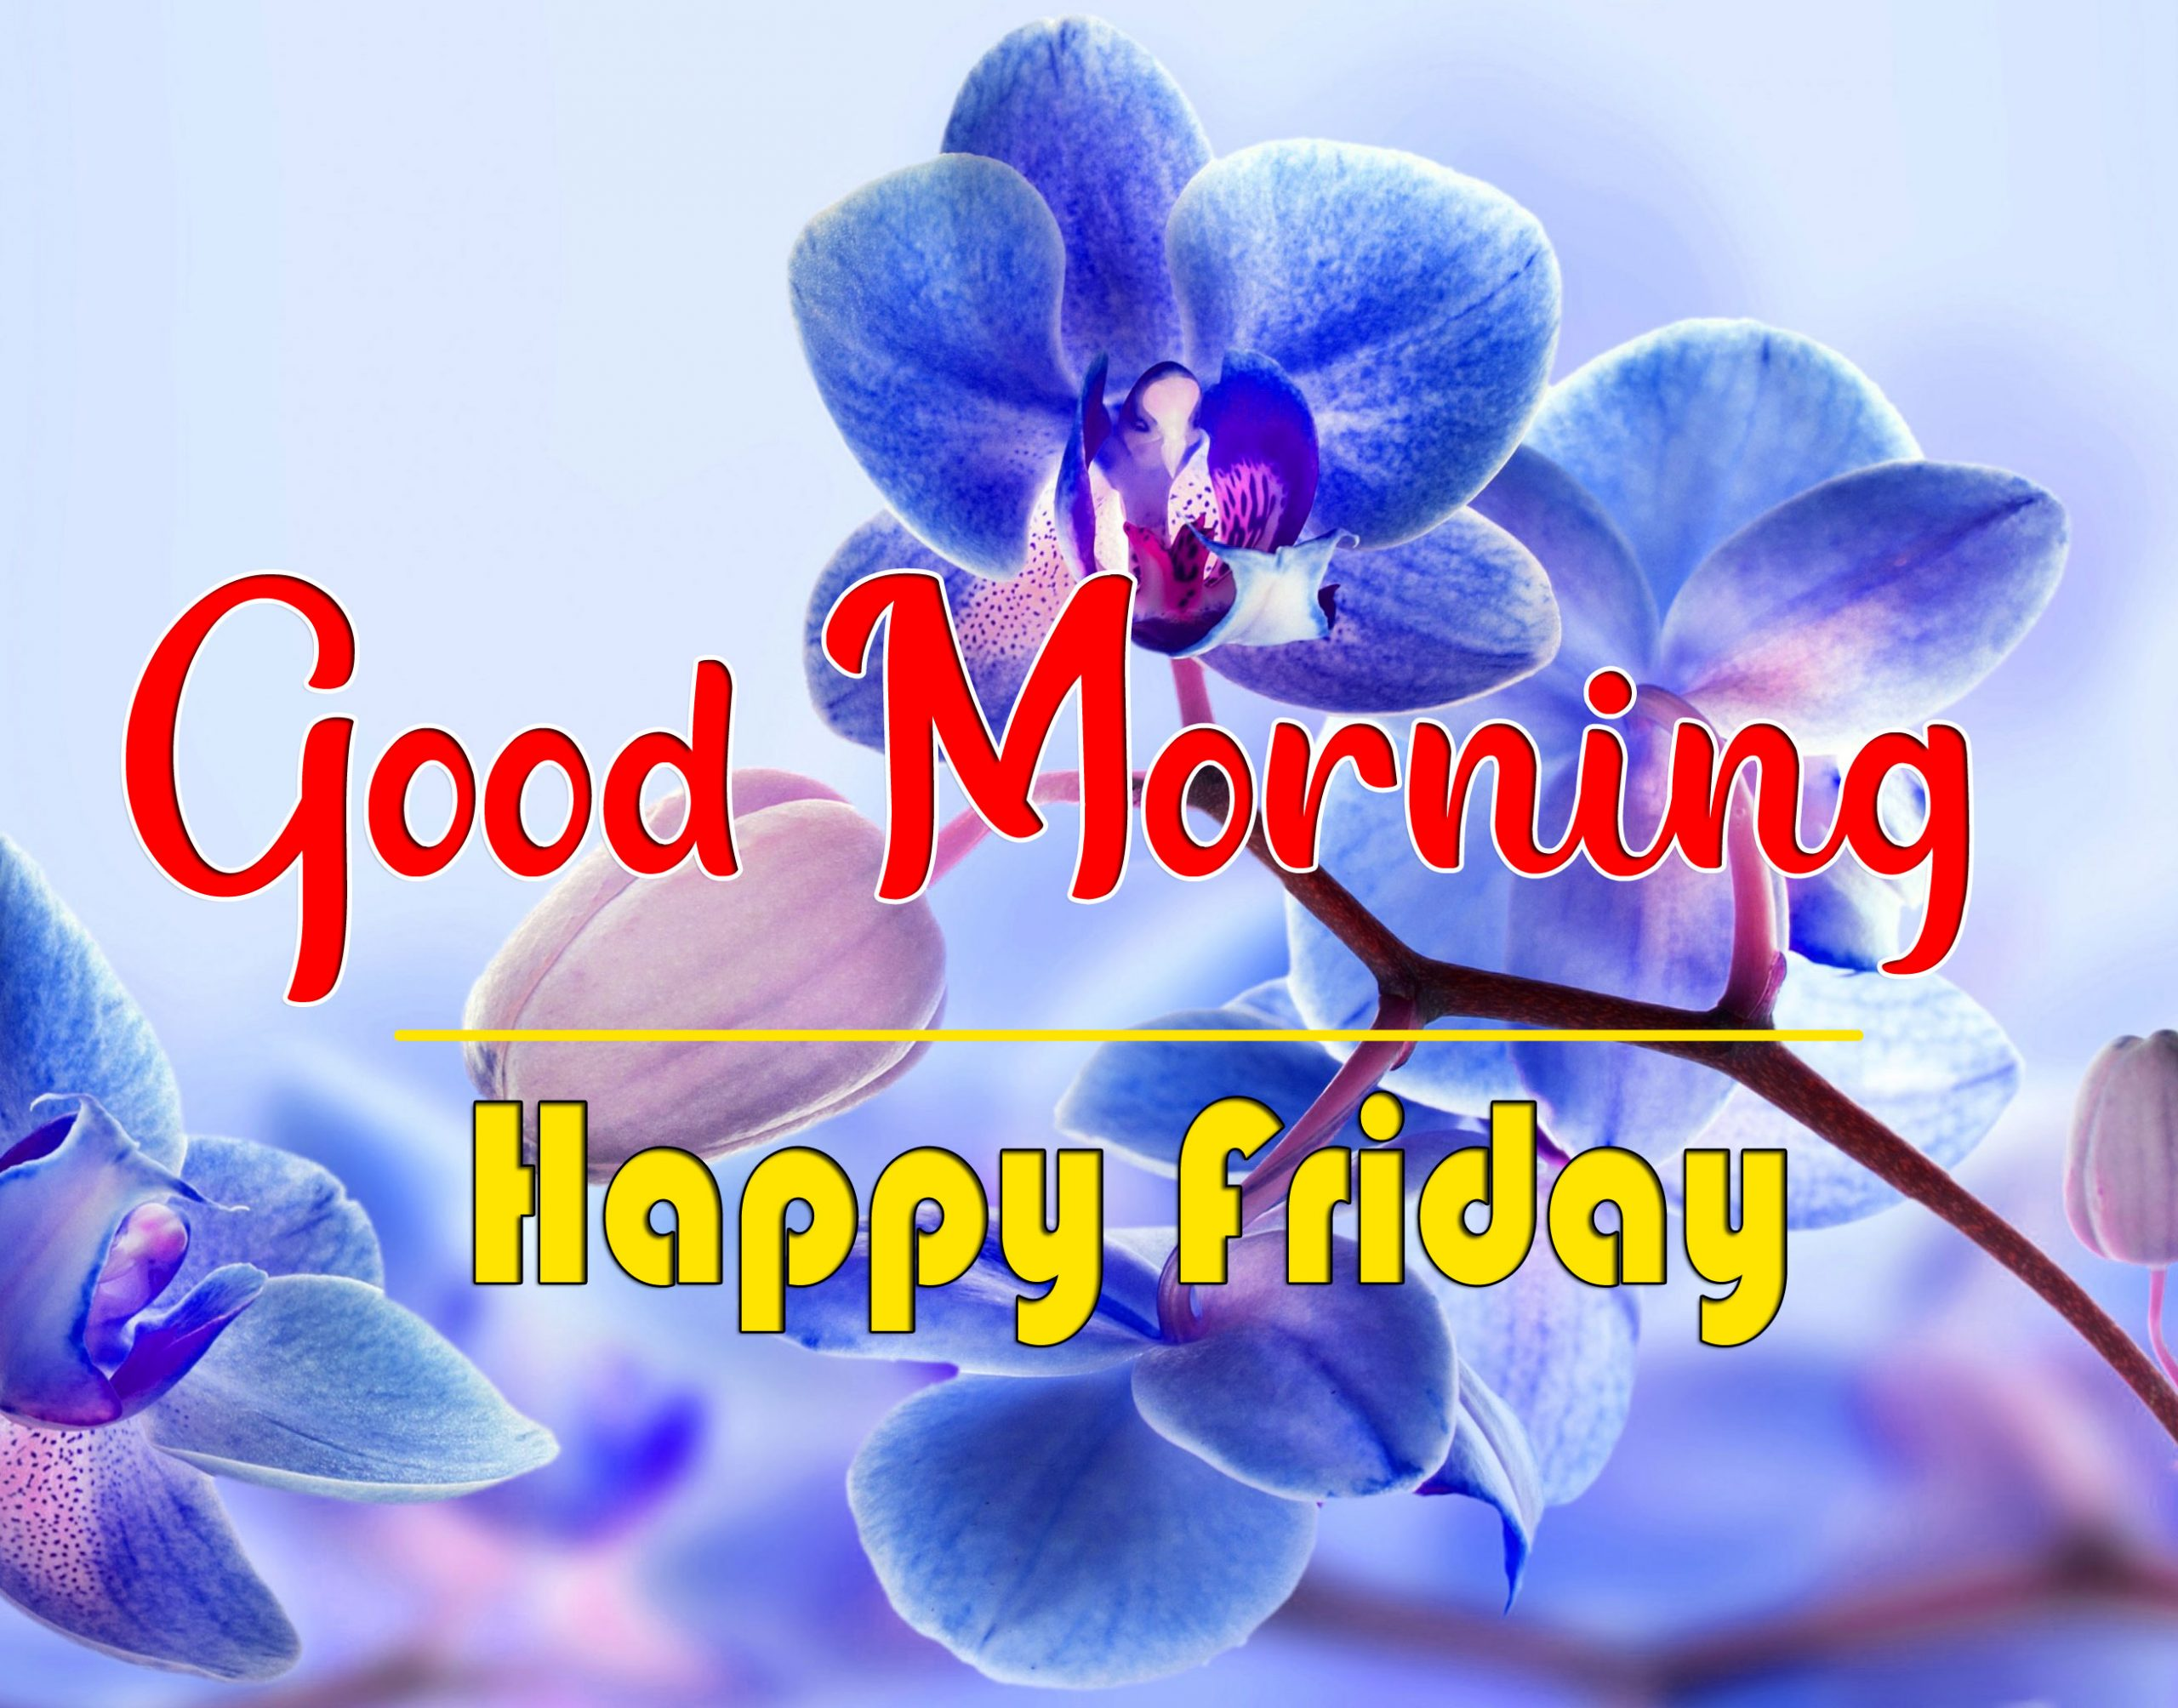 Free HD friday Good morning Wishes Images 2